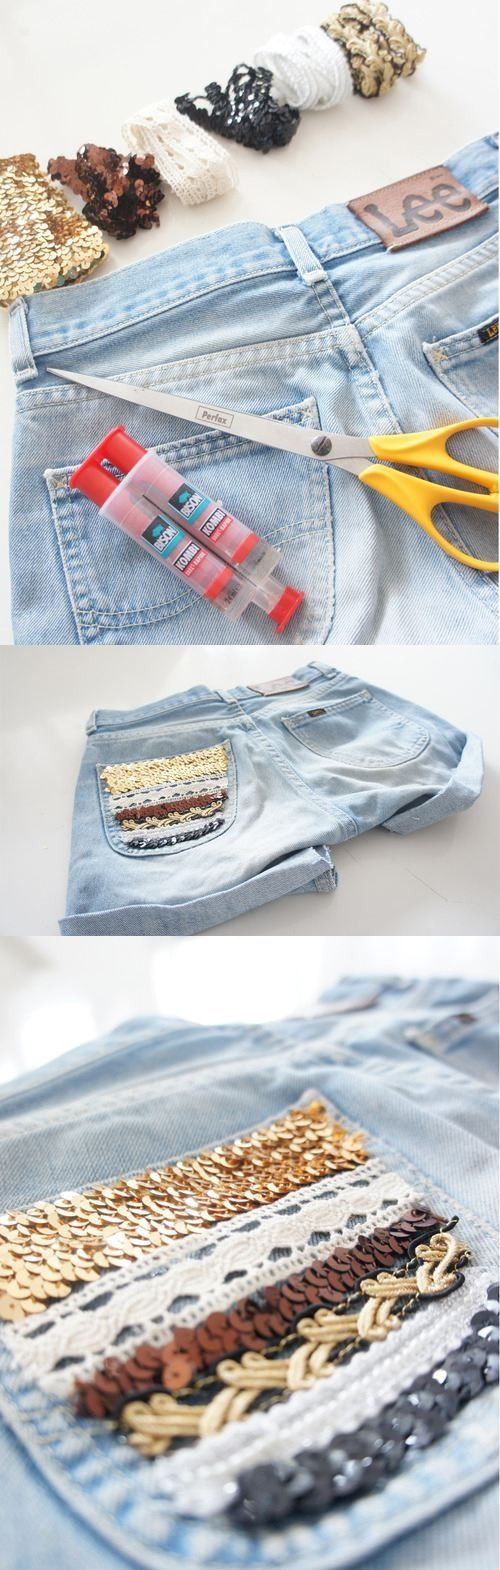 16 Best DIY Fashion Ideas Ever - Fashion Diva Design